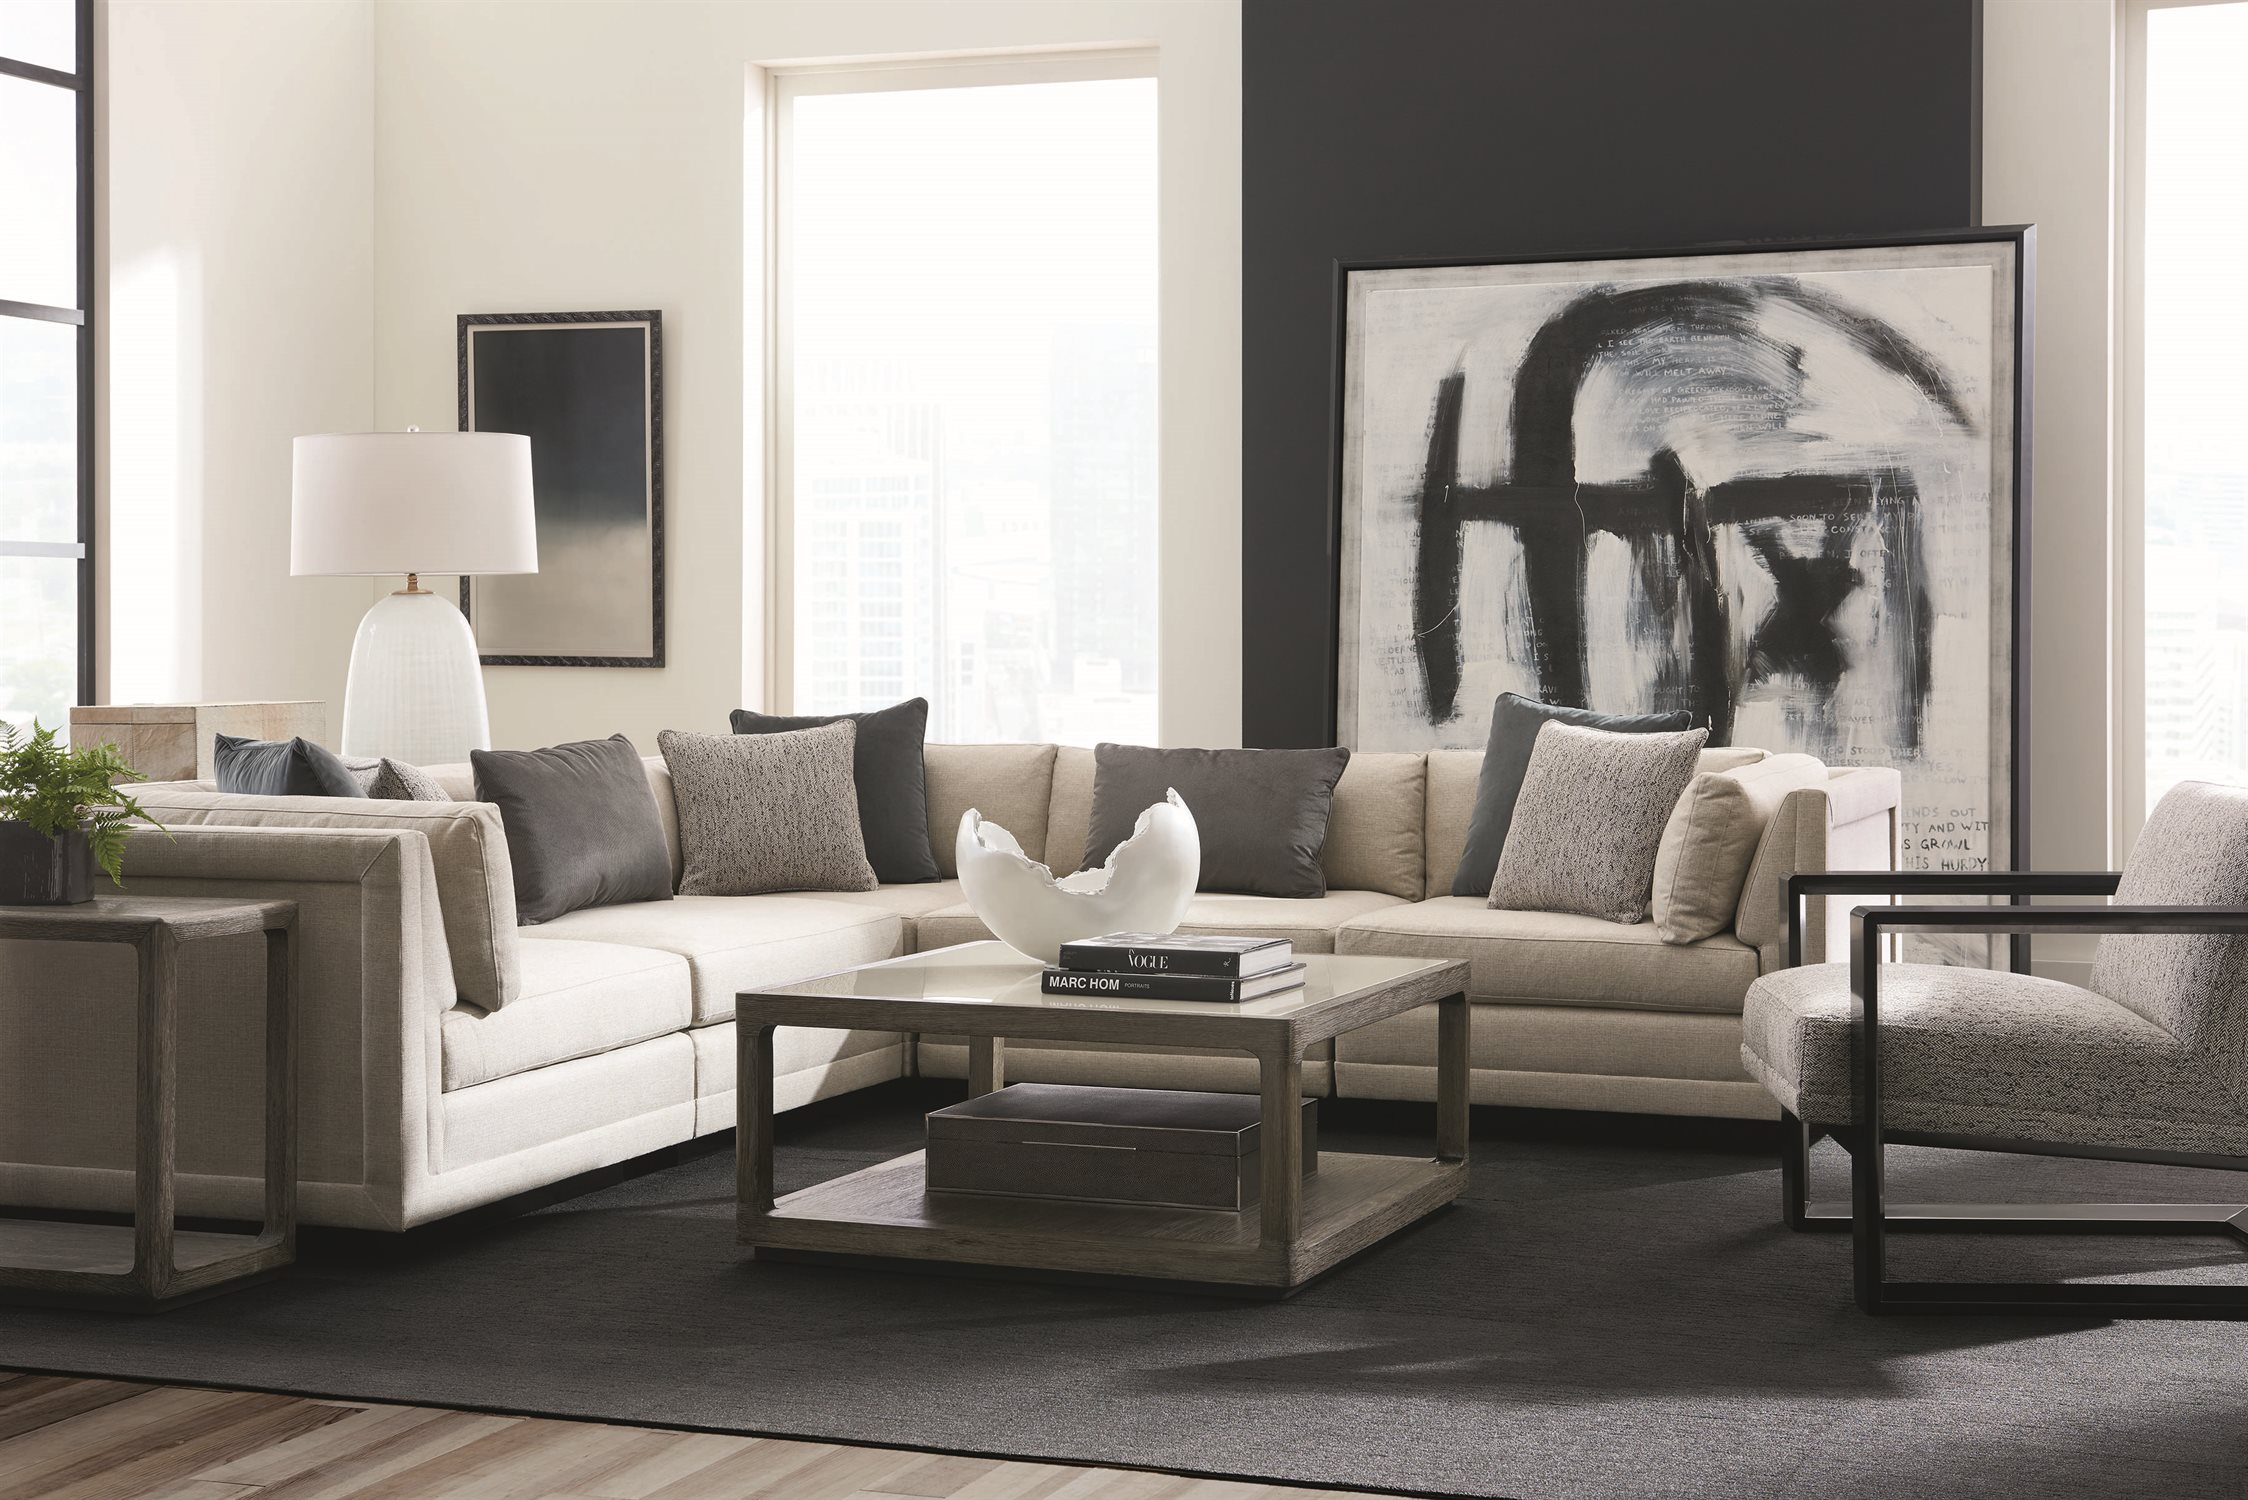 Caracole Modern Fusion Living Room Set Camm050017ac1aset